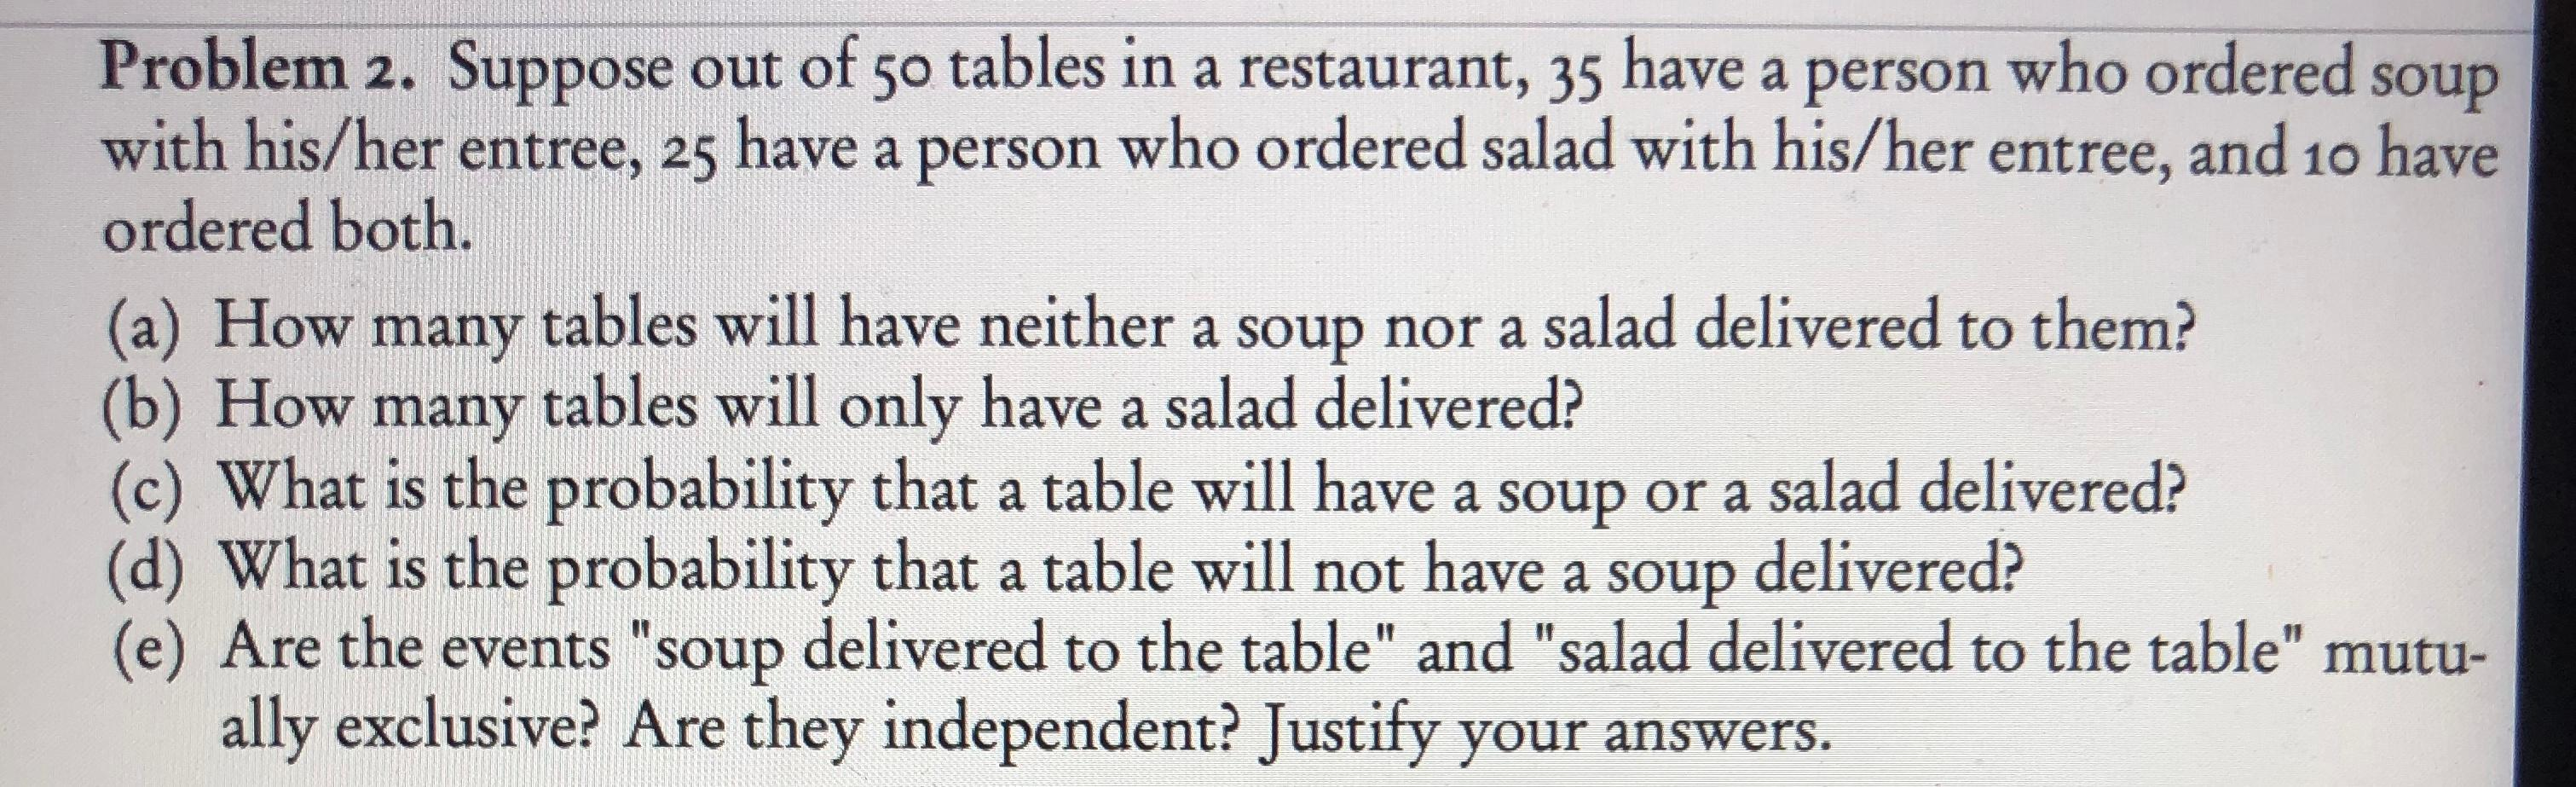 "Problem 2. Suppose out of 50 tables in a restaurant, 35 have a person who ordered with his/her entree, 25 have a person who ordered salad with his/her entree, and 10 have ordered both. soup (a) How many tables will have neither a soup nor a salad delivered to them? (b) How many tables will only have a salad delivered? (c) What is the probability that a table will have a soup or a salad delivered? (d) What is the probability that a table will not have a soup delivered? (e) Are the events ""soup delivered to the table"" and ""salad delivered to the table"" mutu- ally exclusive? Are they independent? Justify your answers."